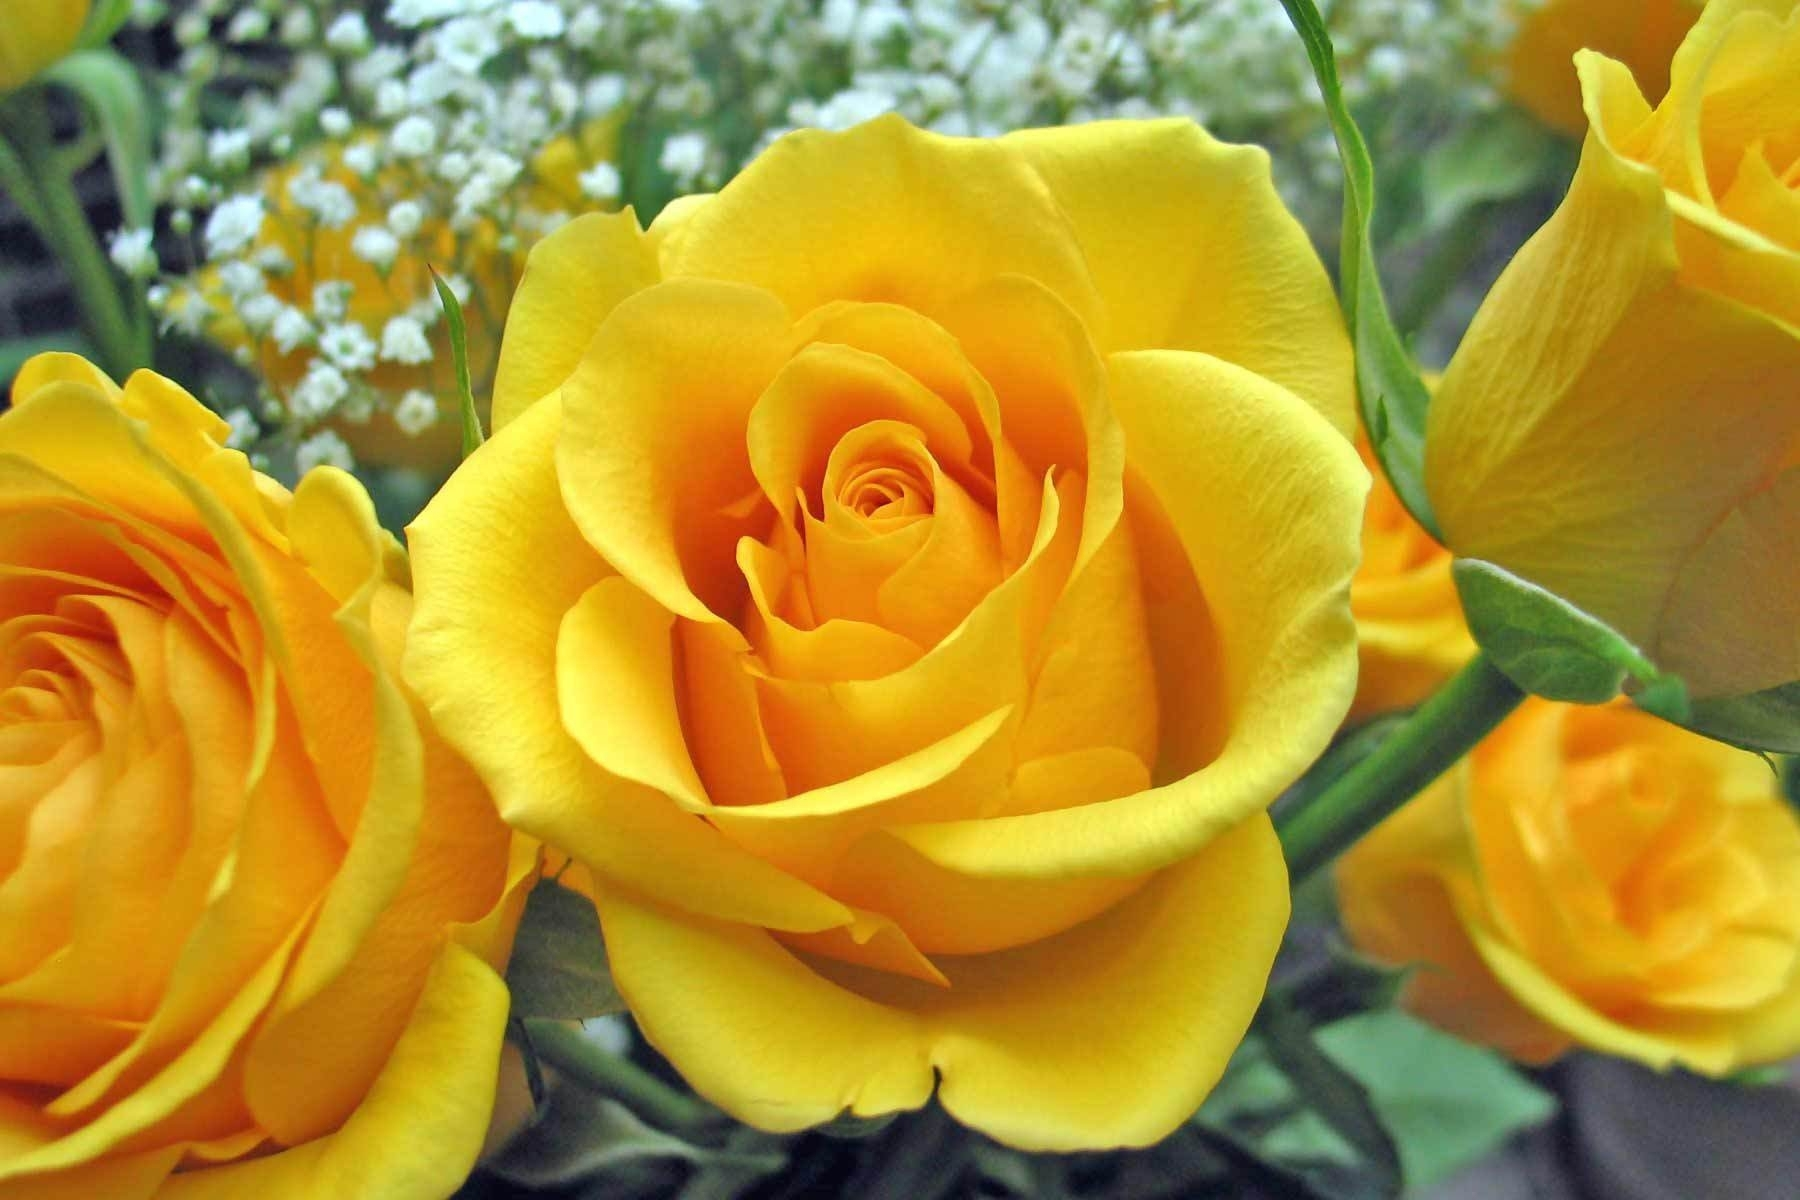 file:awesome-yellow-rose - wikimedia commons